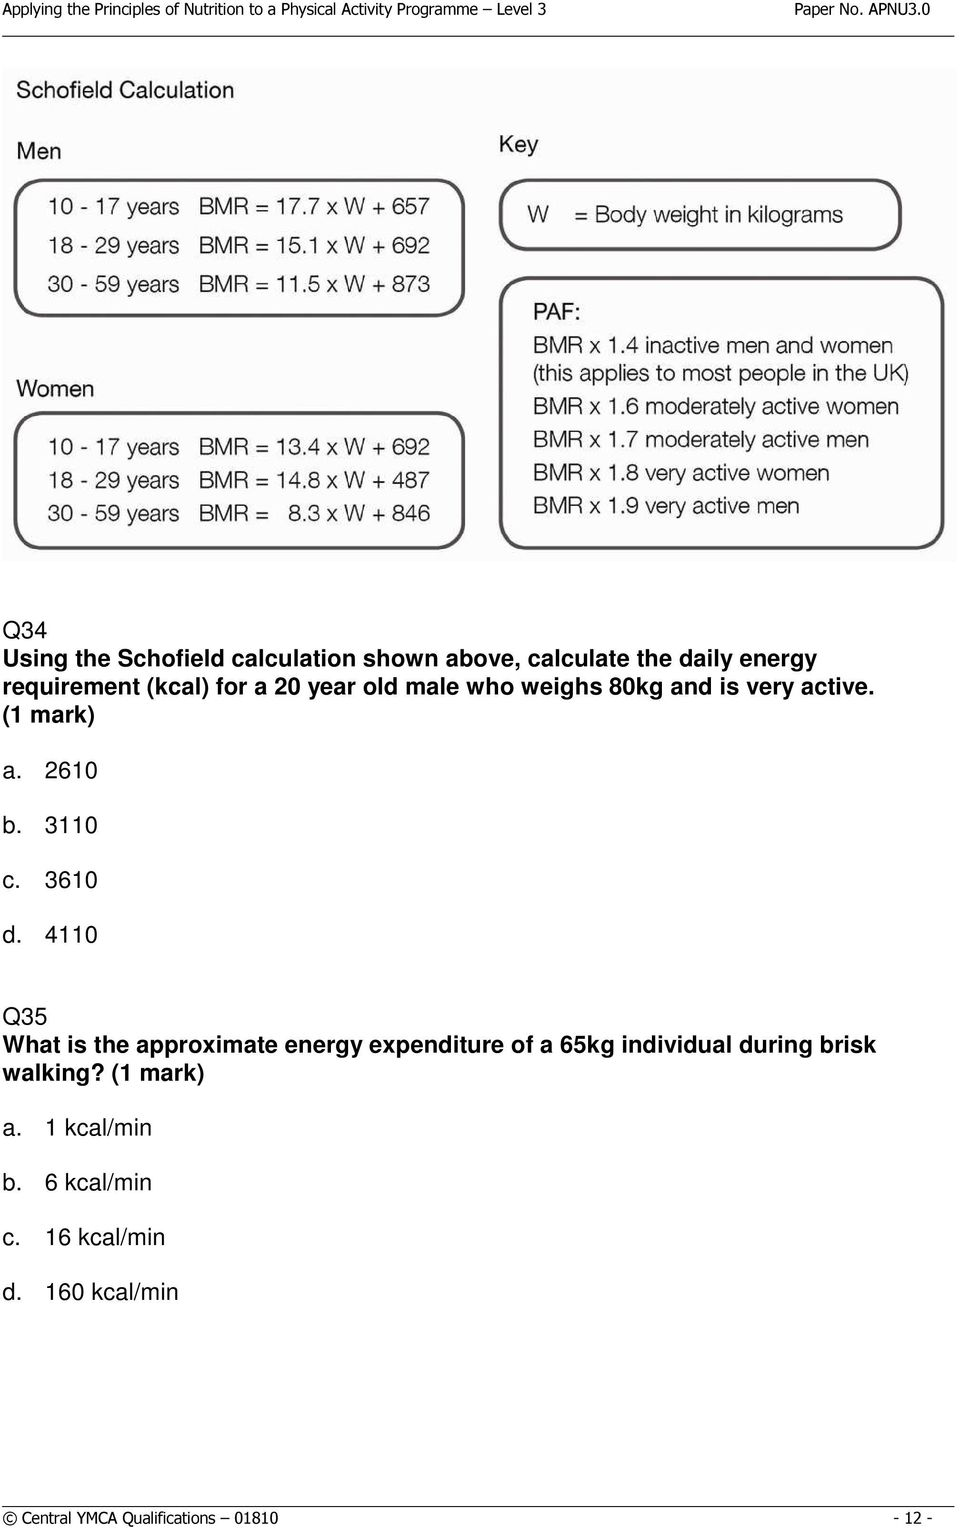 4110 Q35 What is the approximate energy expenditure of a 65kg individual during brisk walking?